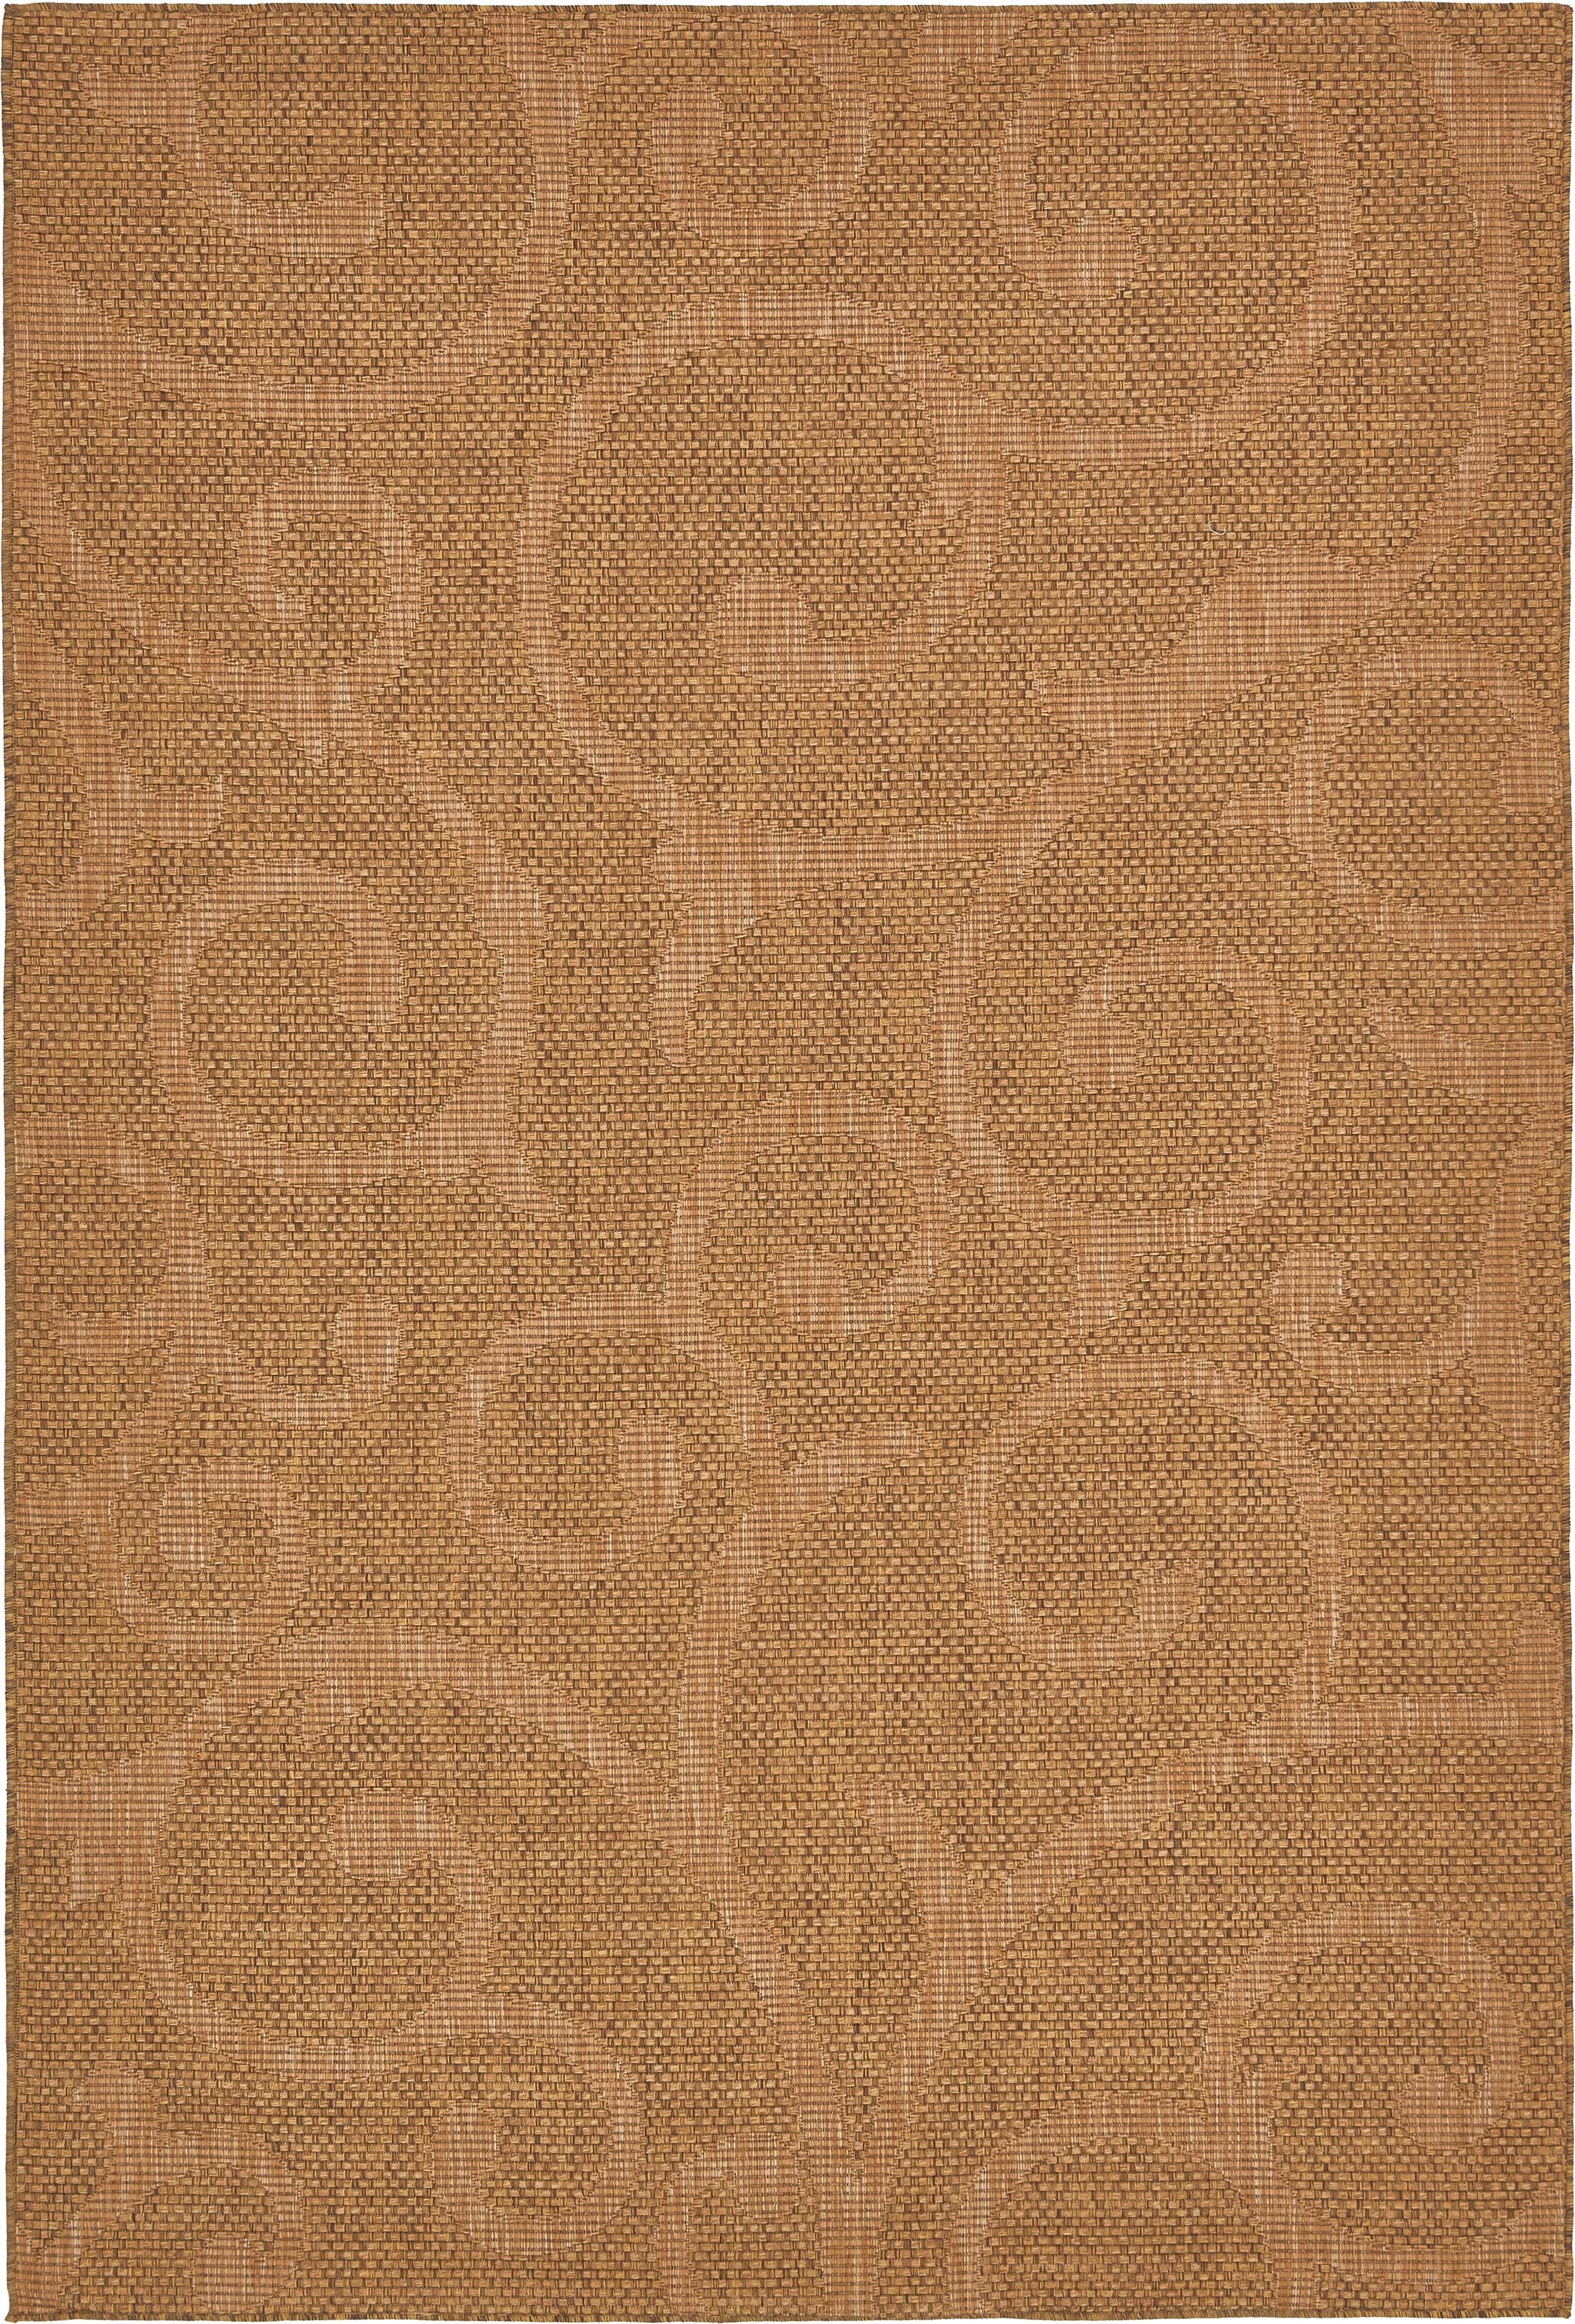 Kendari Brown Outdoor Area Rug Rug Size: Rectangle 6' x 9'